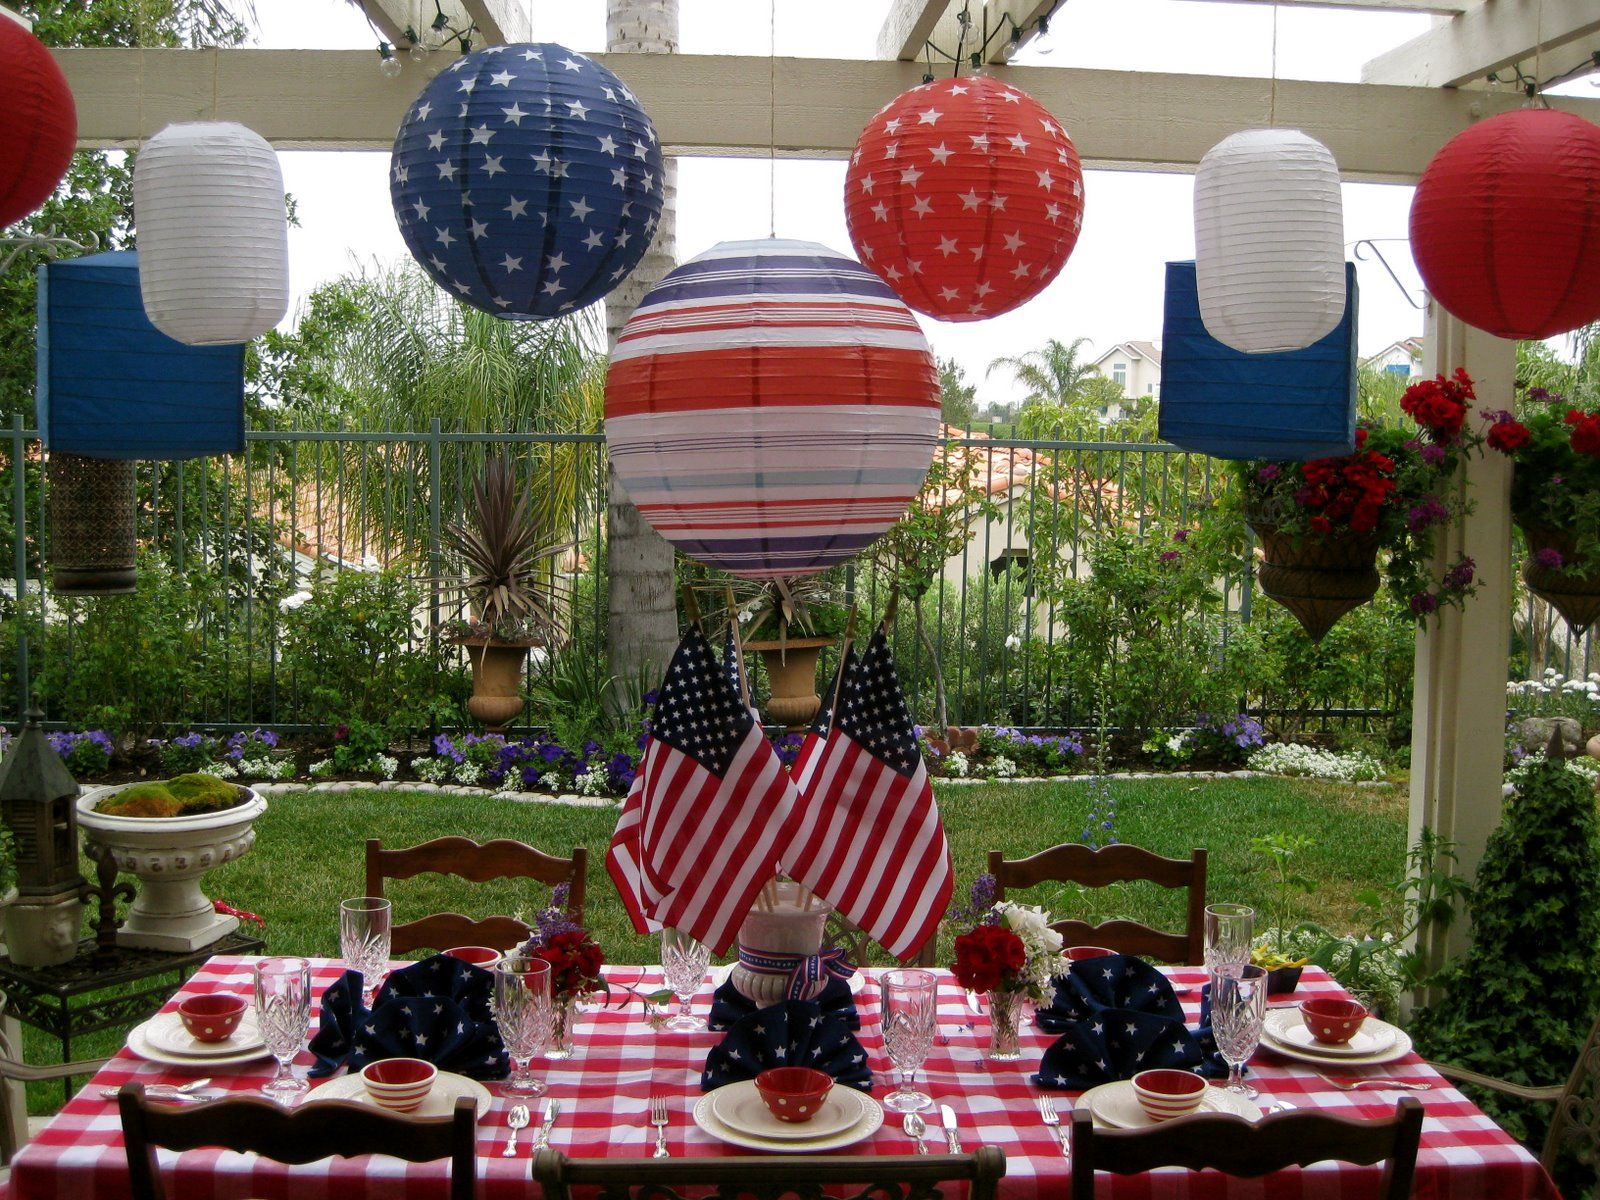 berry decorating back yard ideas | Tagged as July 4th table decor ...